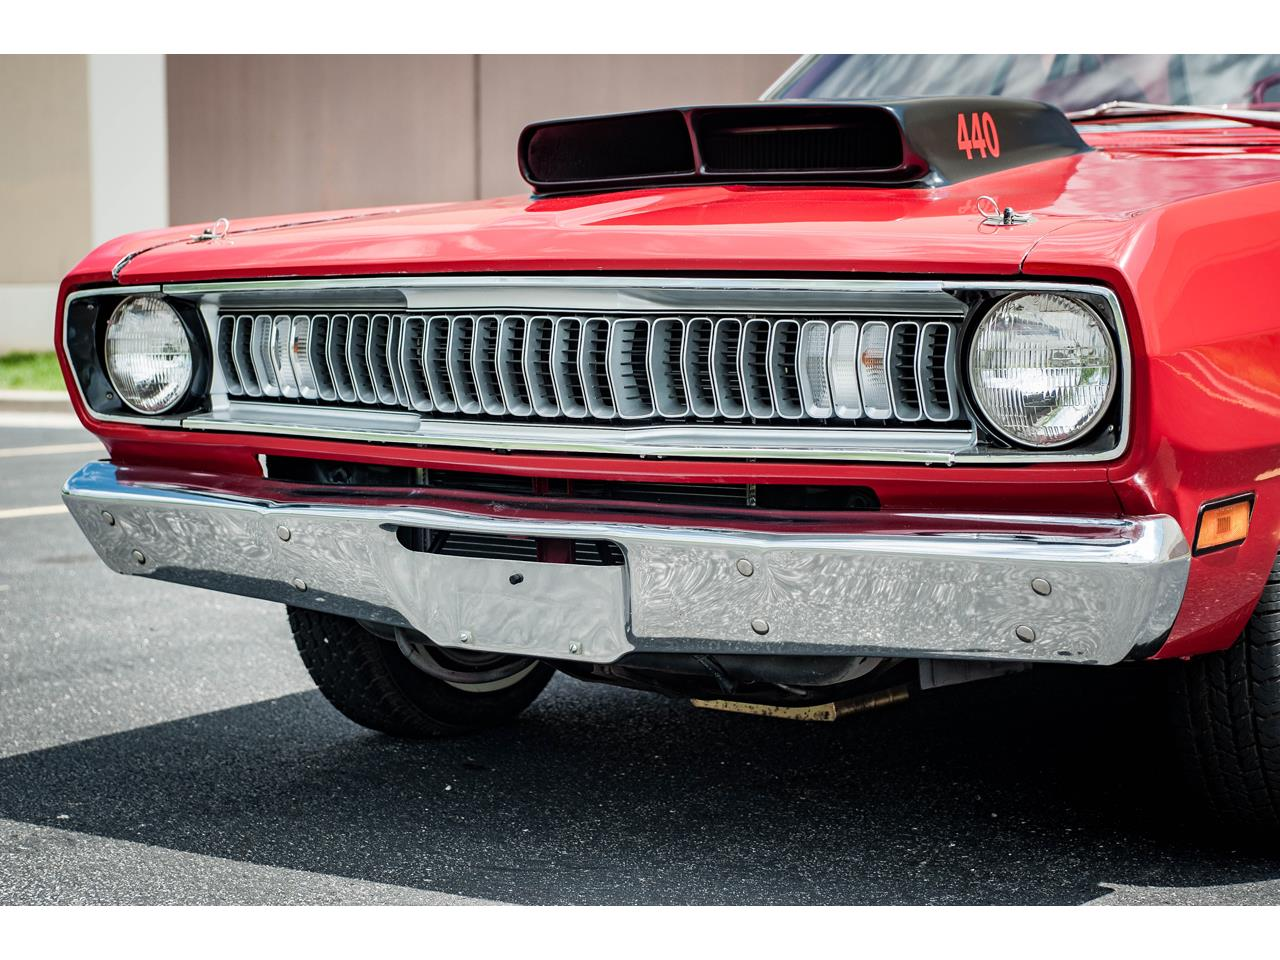 Large Picture of Classic 1971 Duster located in Illinois - $30,000.00 Offered by Gateway Classic Cars - St. Louis - QB9U